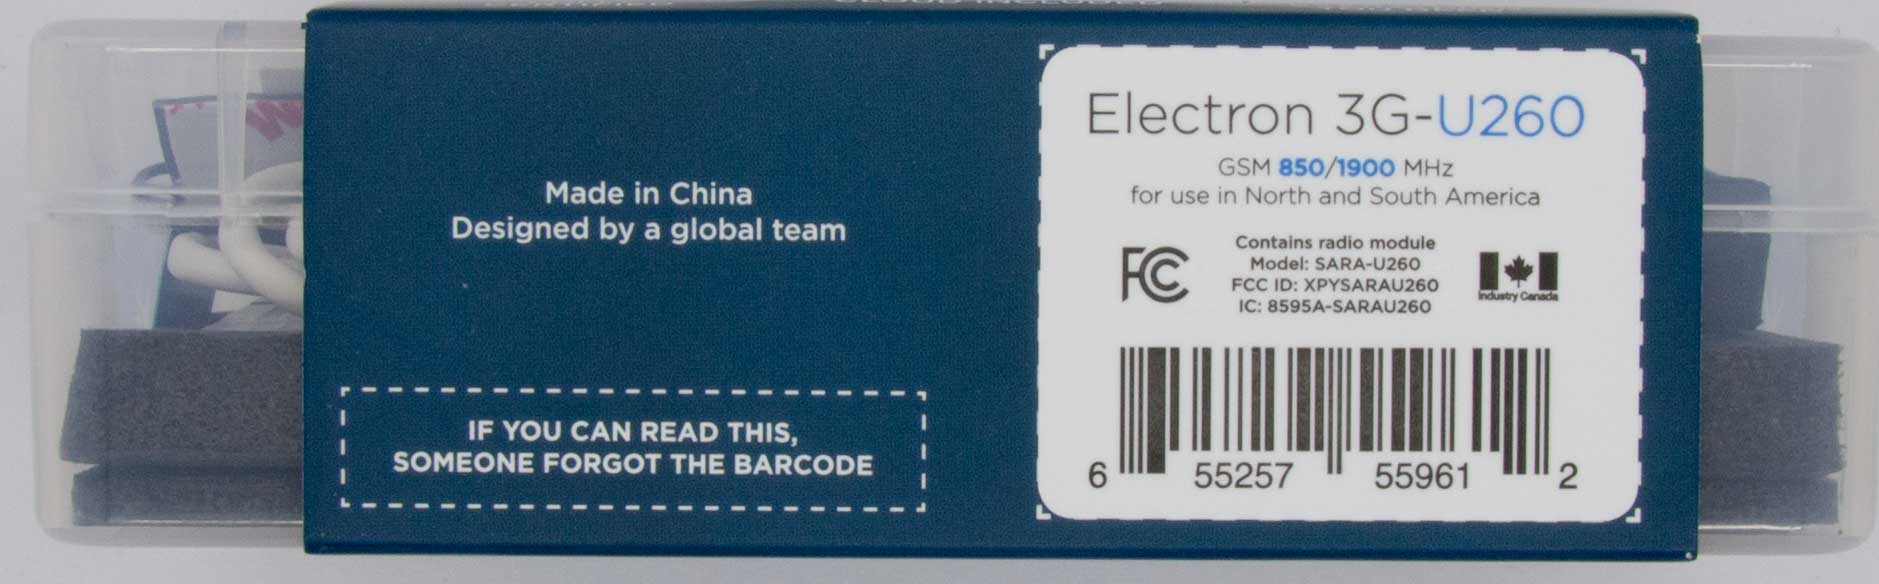 Hmm, I guess someone forgot the barcode then.